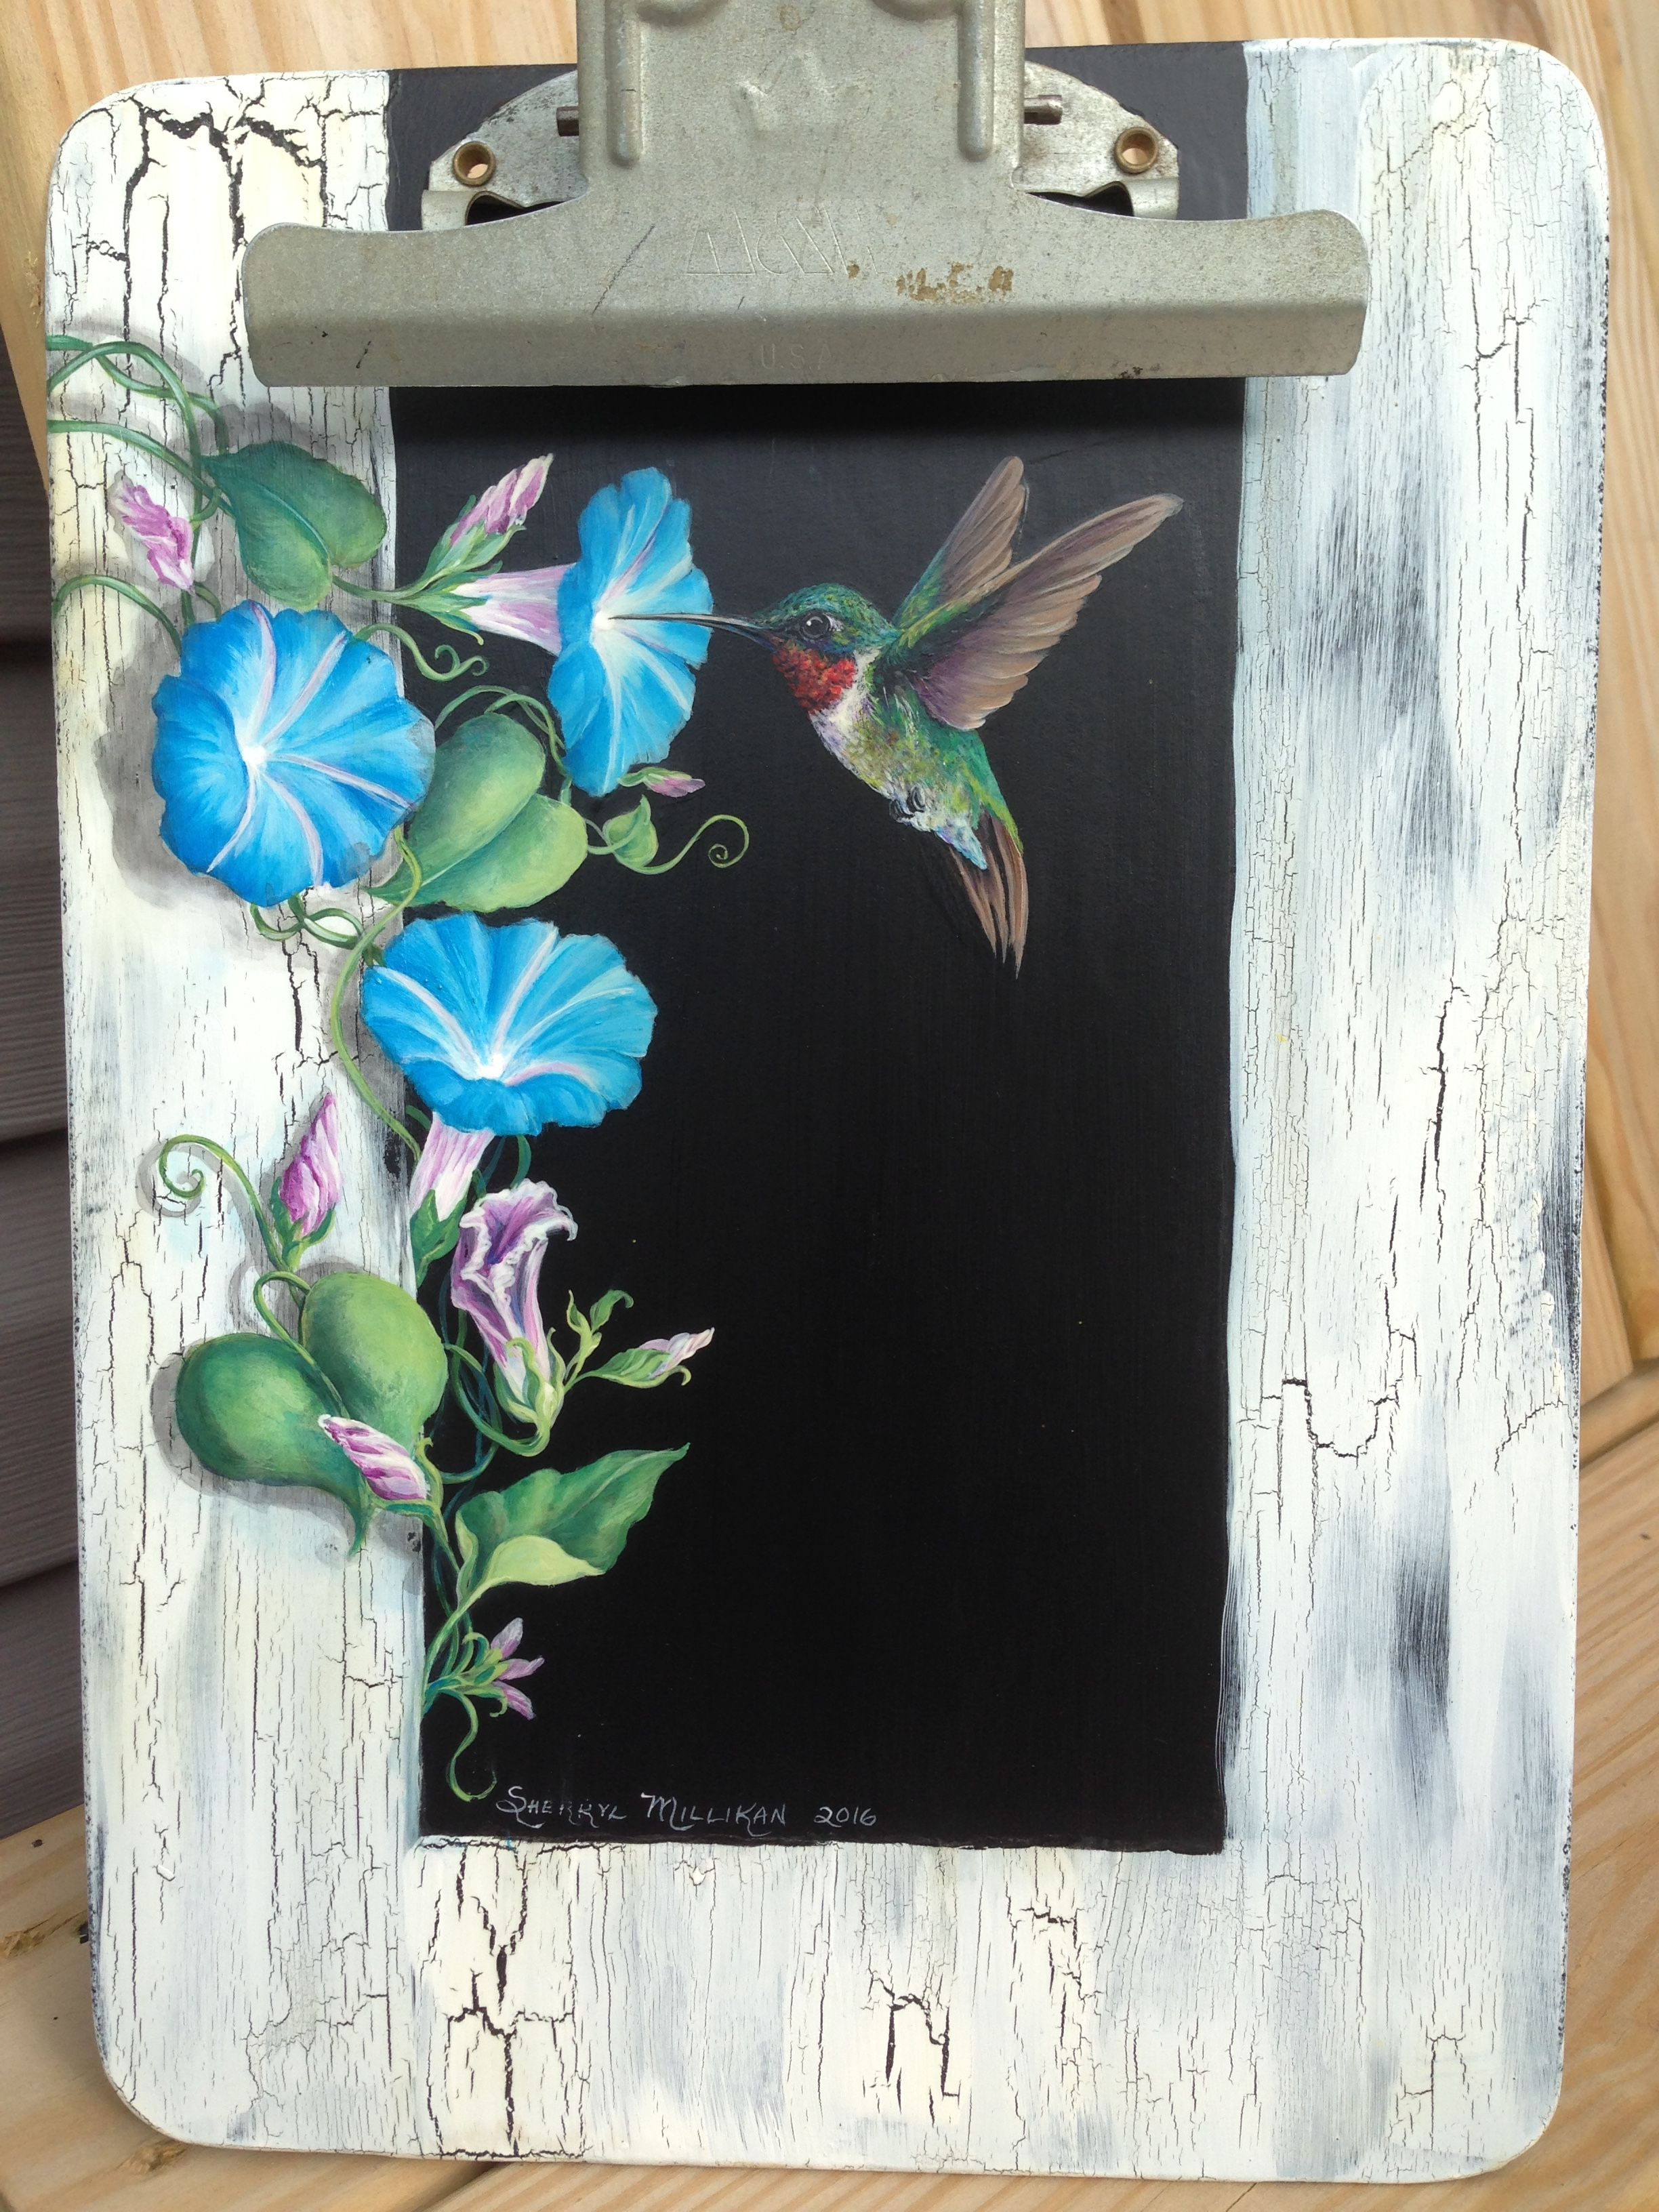 Chalkboard Clipboard Hummingbird With Morning Glories Painted By Sherrylpaintz